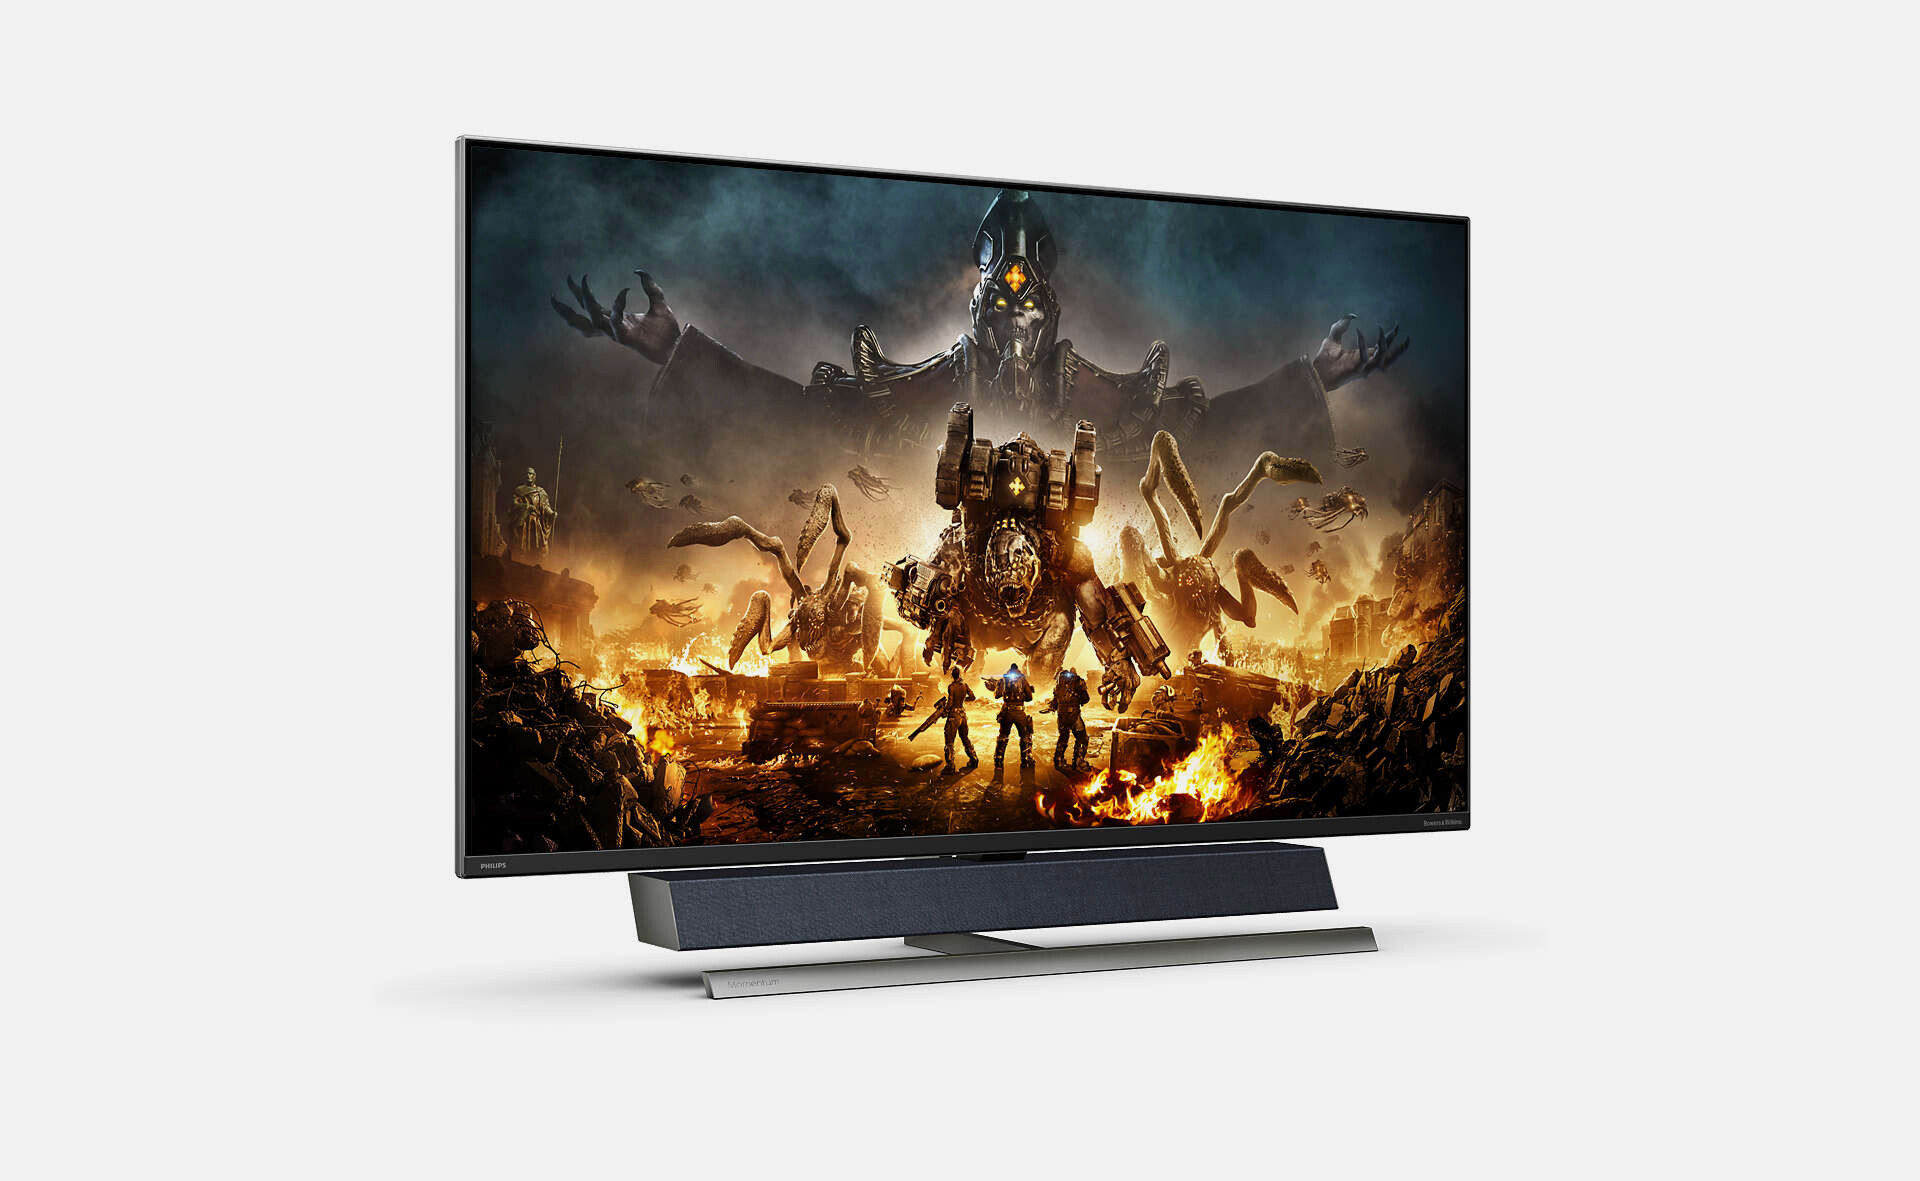 Philips Momentum 559M1RYVL: A 55-inch gaming monitor that supports 144 Hz, HDMI 2.1, USB Type-C Power Delivery, AMD FreeSync and NVIDIA G-Sync